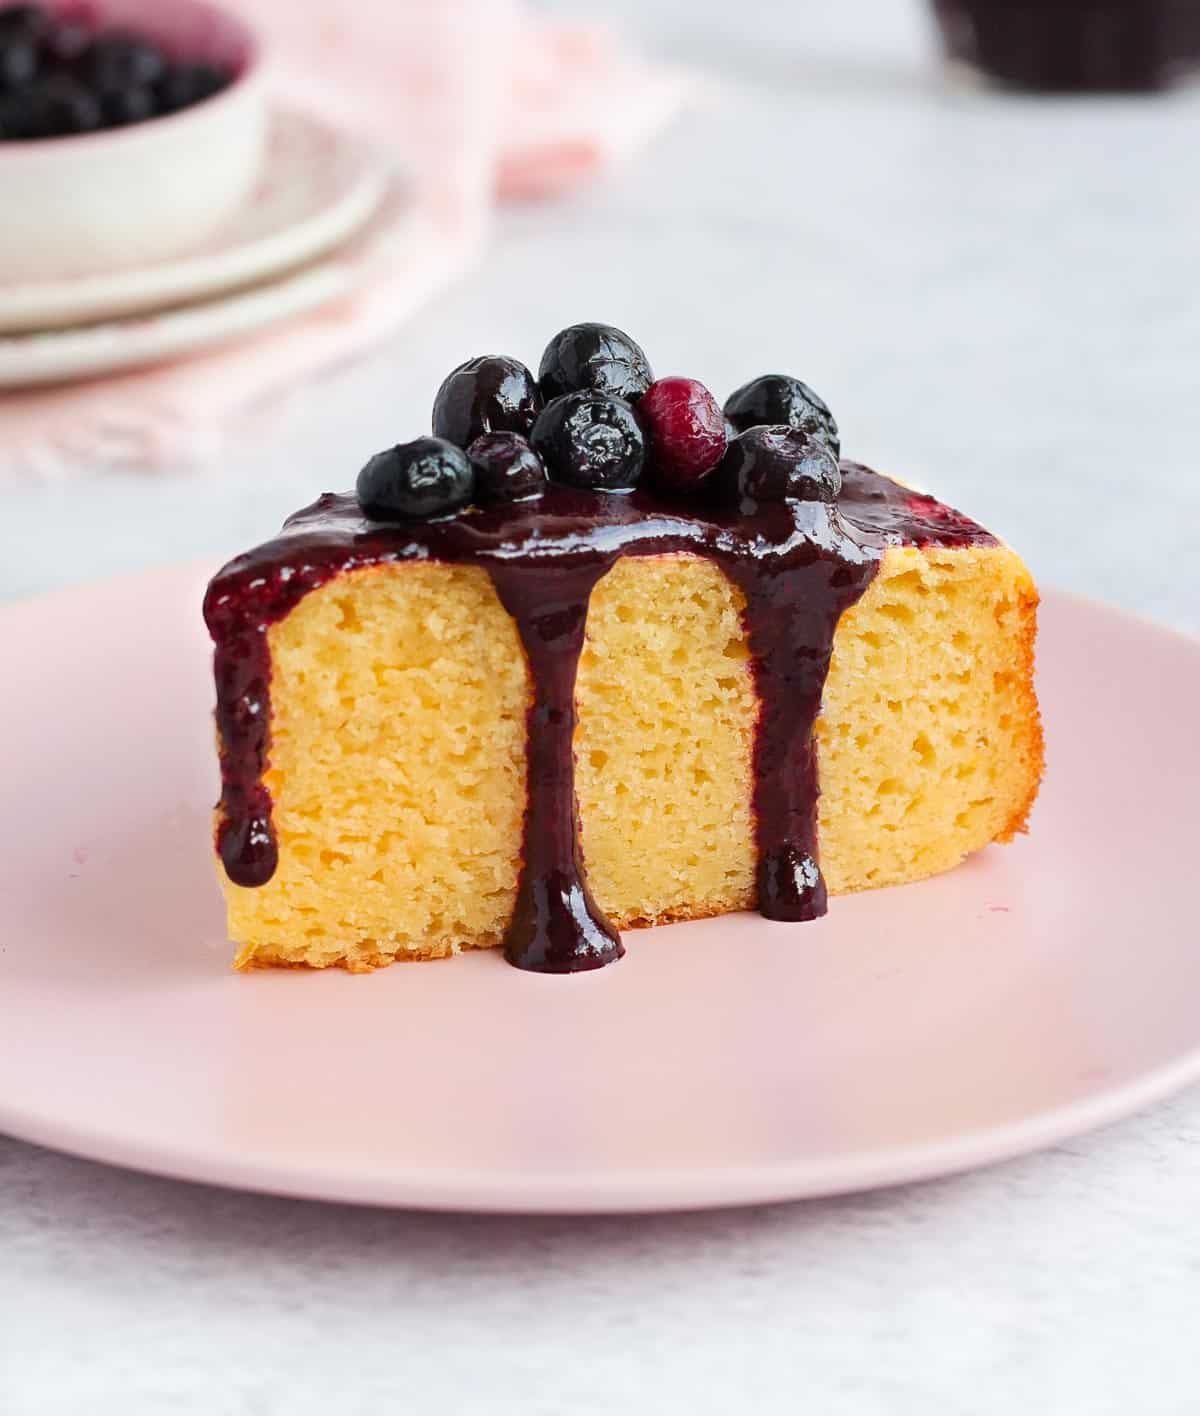 Blueberry topping poured over a slice of cake.